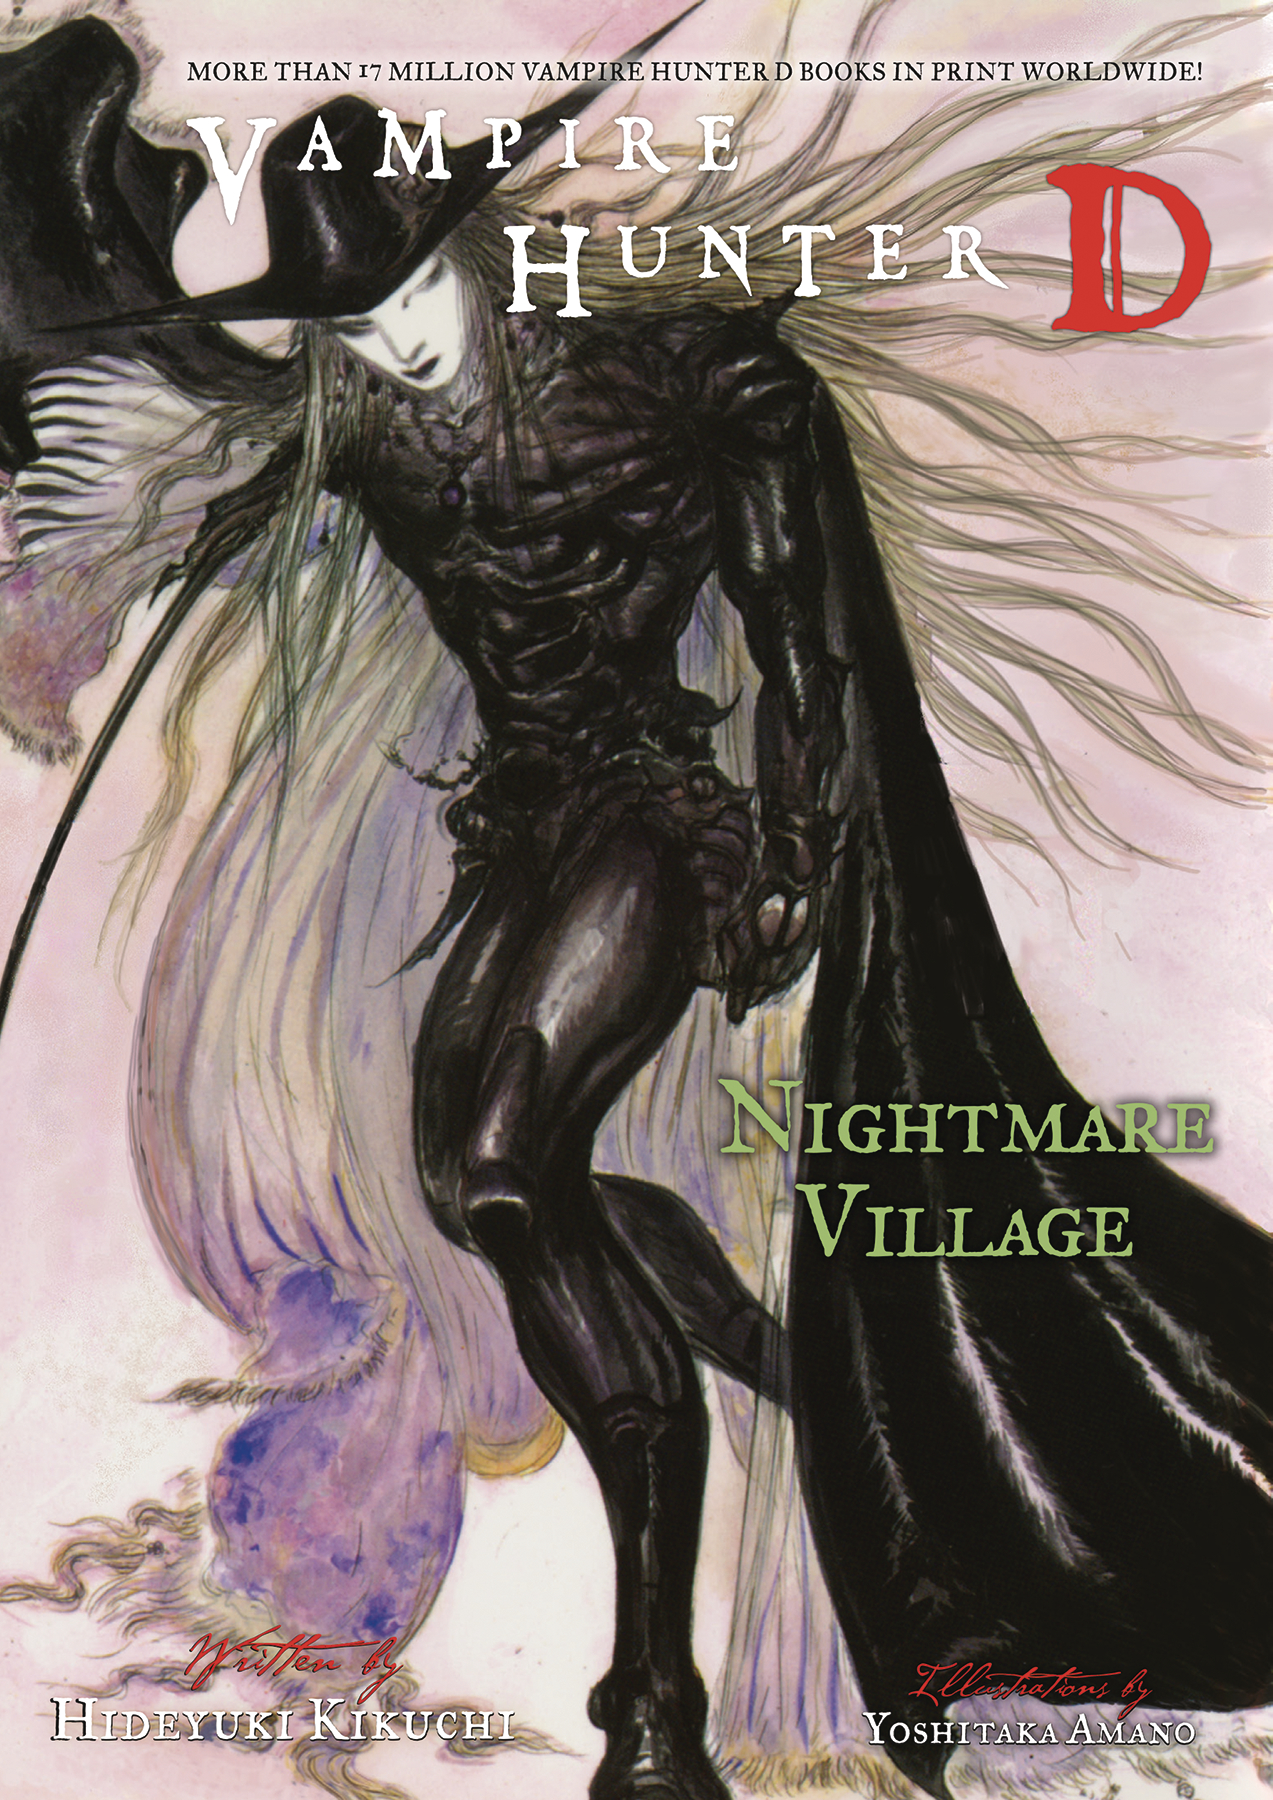 VAMPIRE HUNTER D NOVEL SC VOL 27 NIGHTMARE VILLAGE TP (MR) (